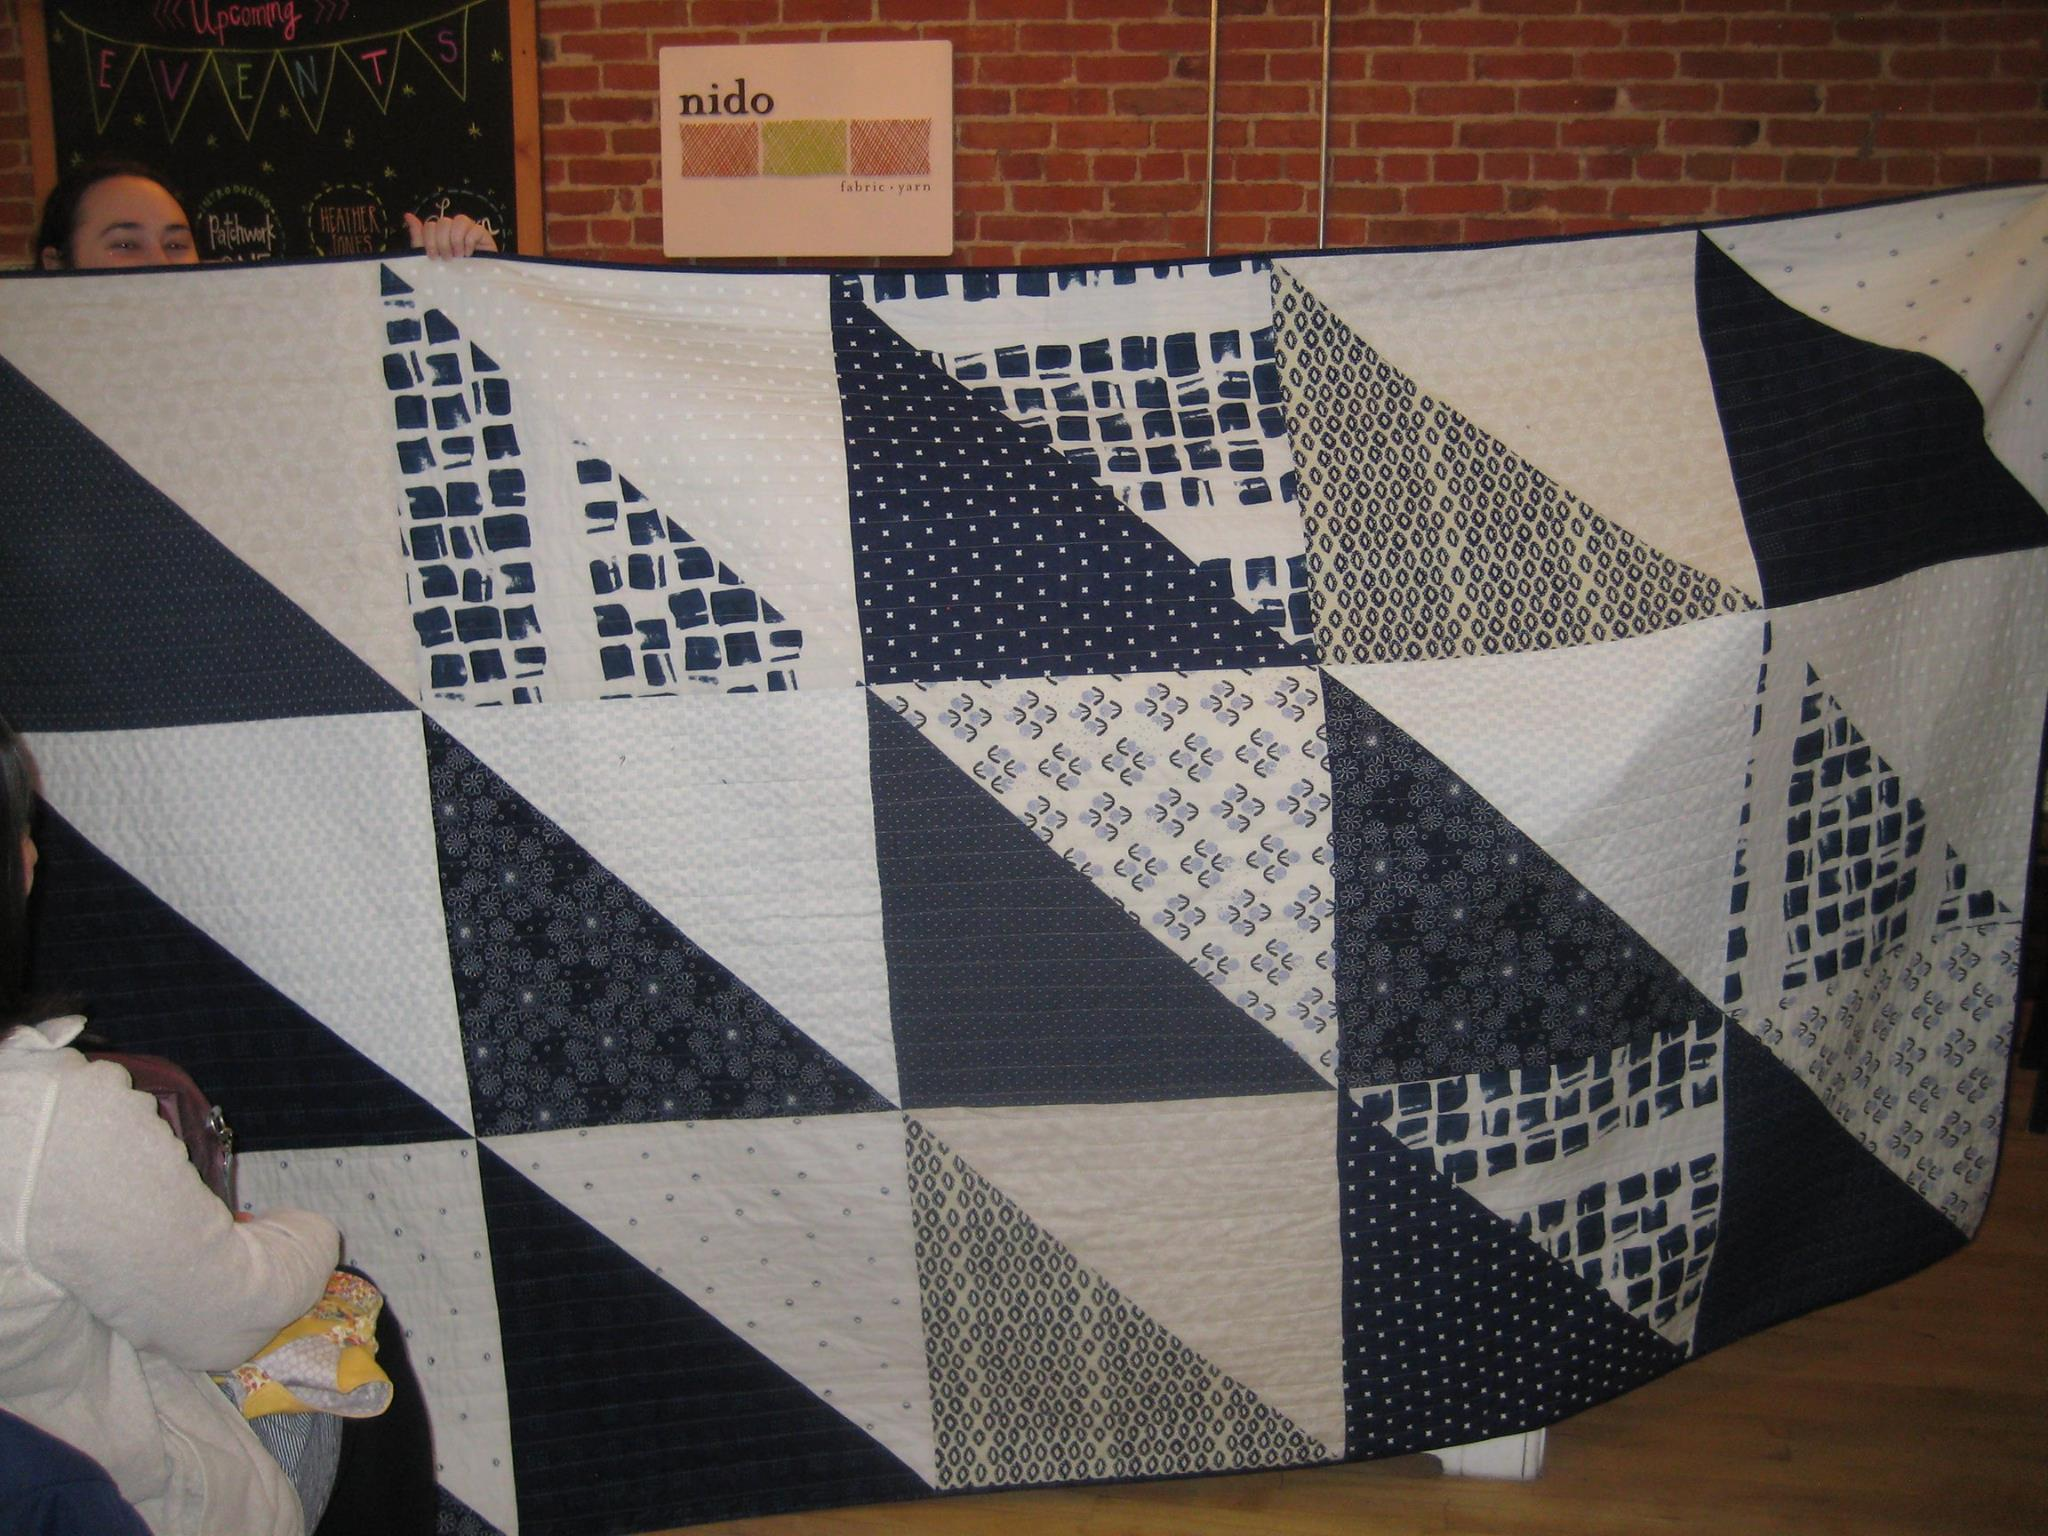 Blue and white quilt intended for Anya's son, but repurposed to decorate her bed.